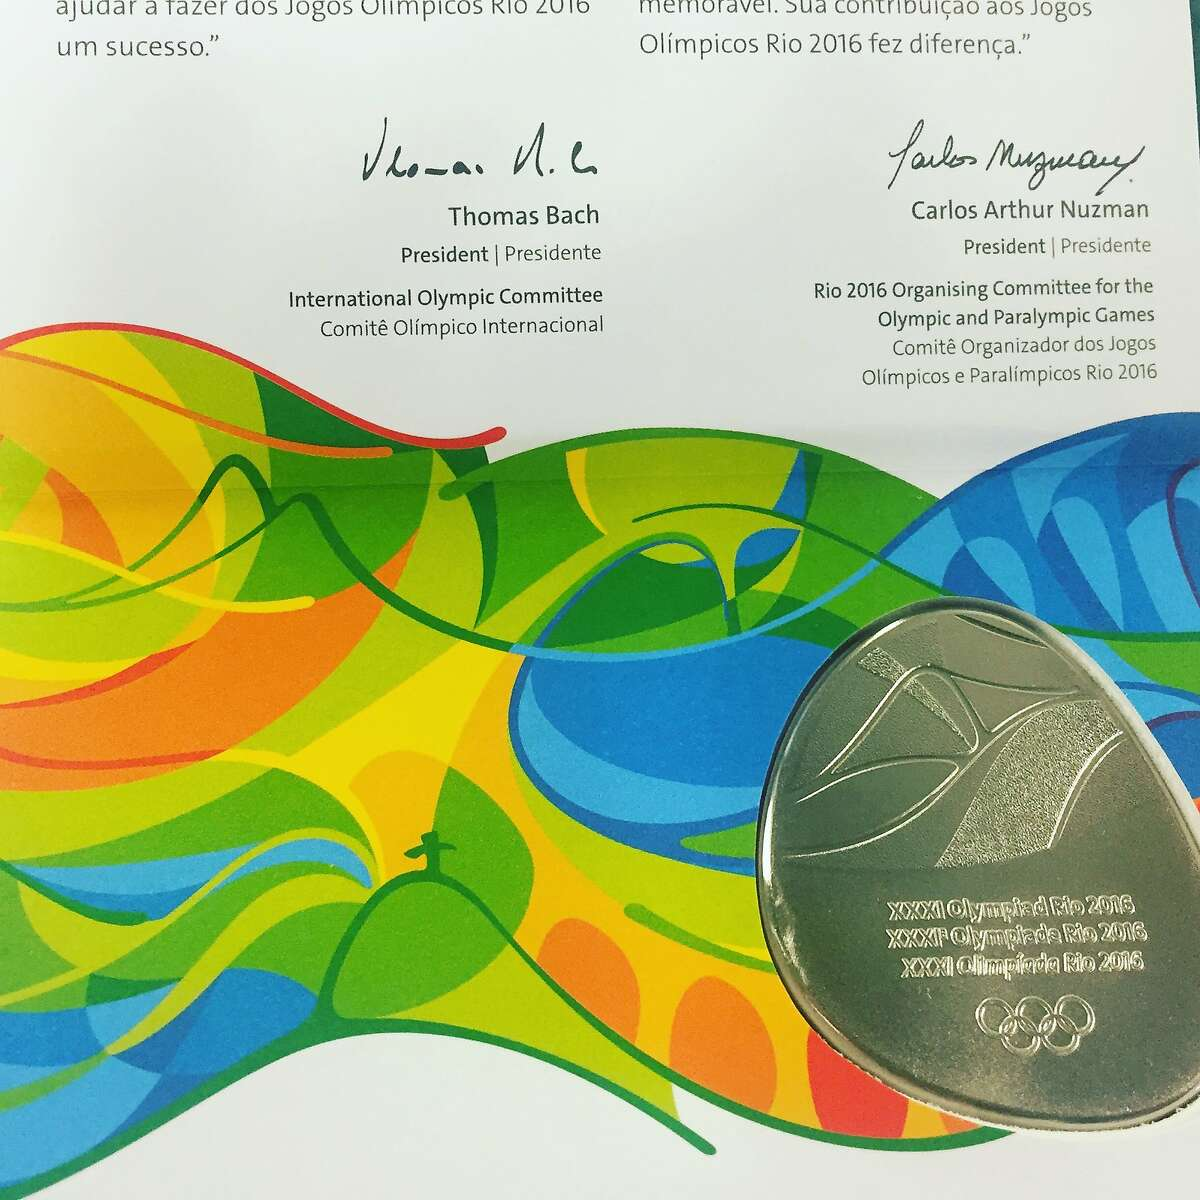 Media are awarded a medal for covering the 2016 Games